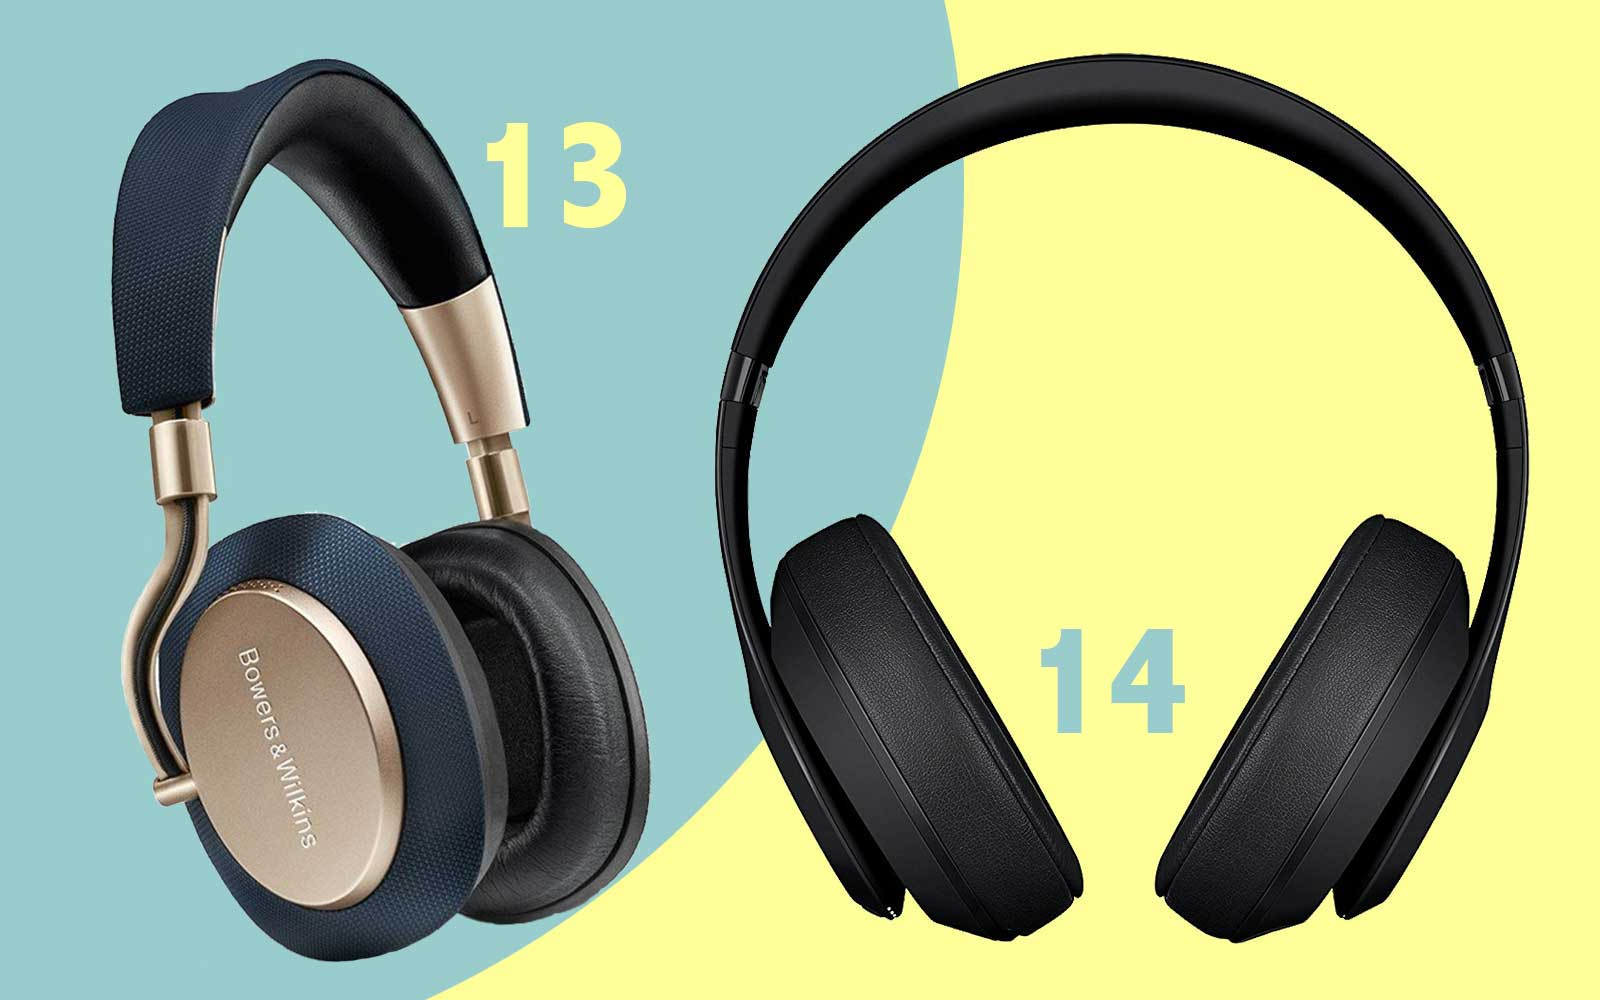 Wireless noise-canceling headphones by Beats and Bowers & Wilkins